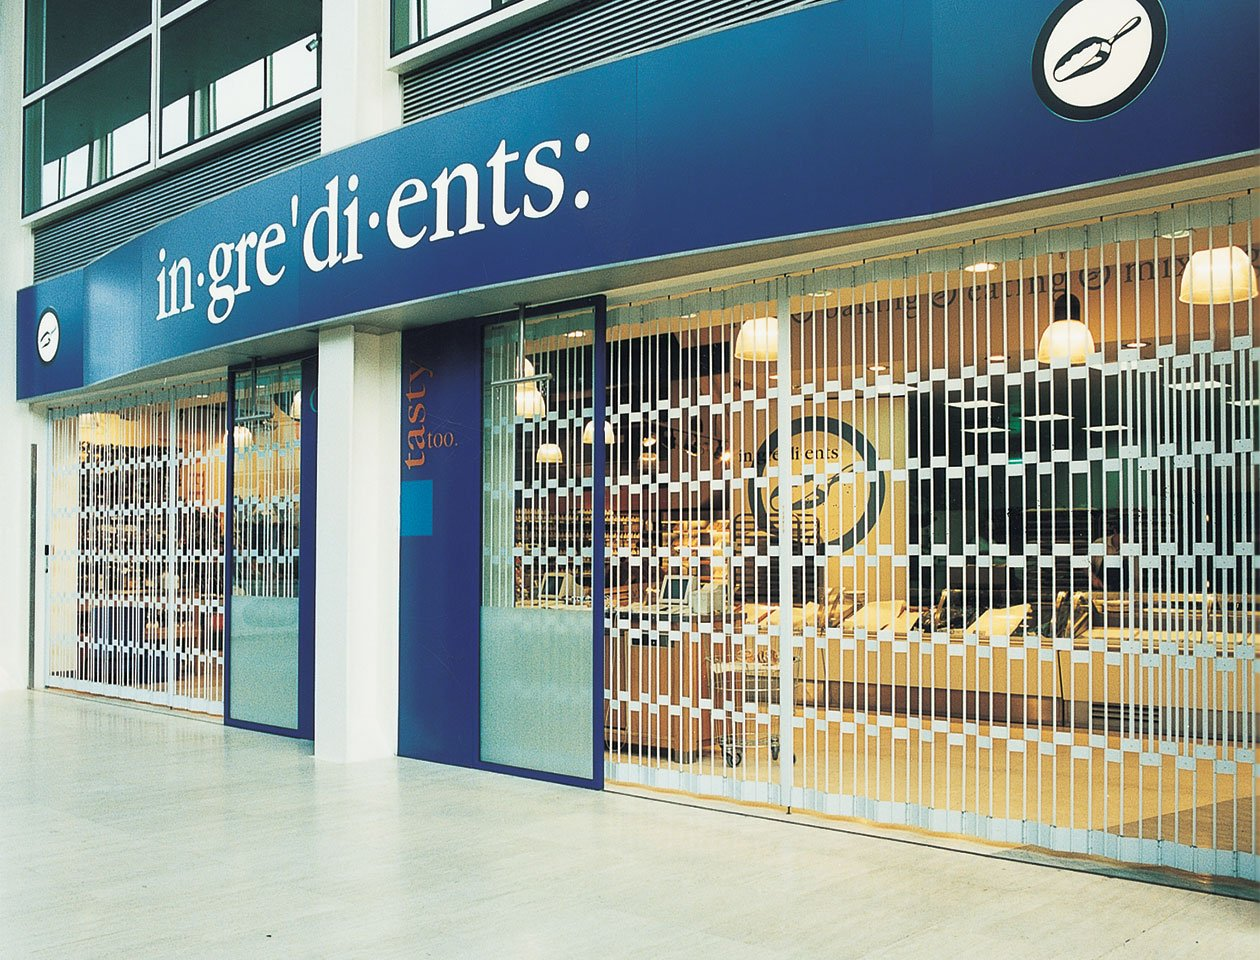 sliding security grille used at shopfront